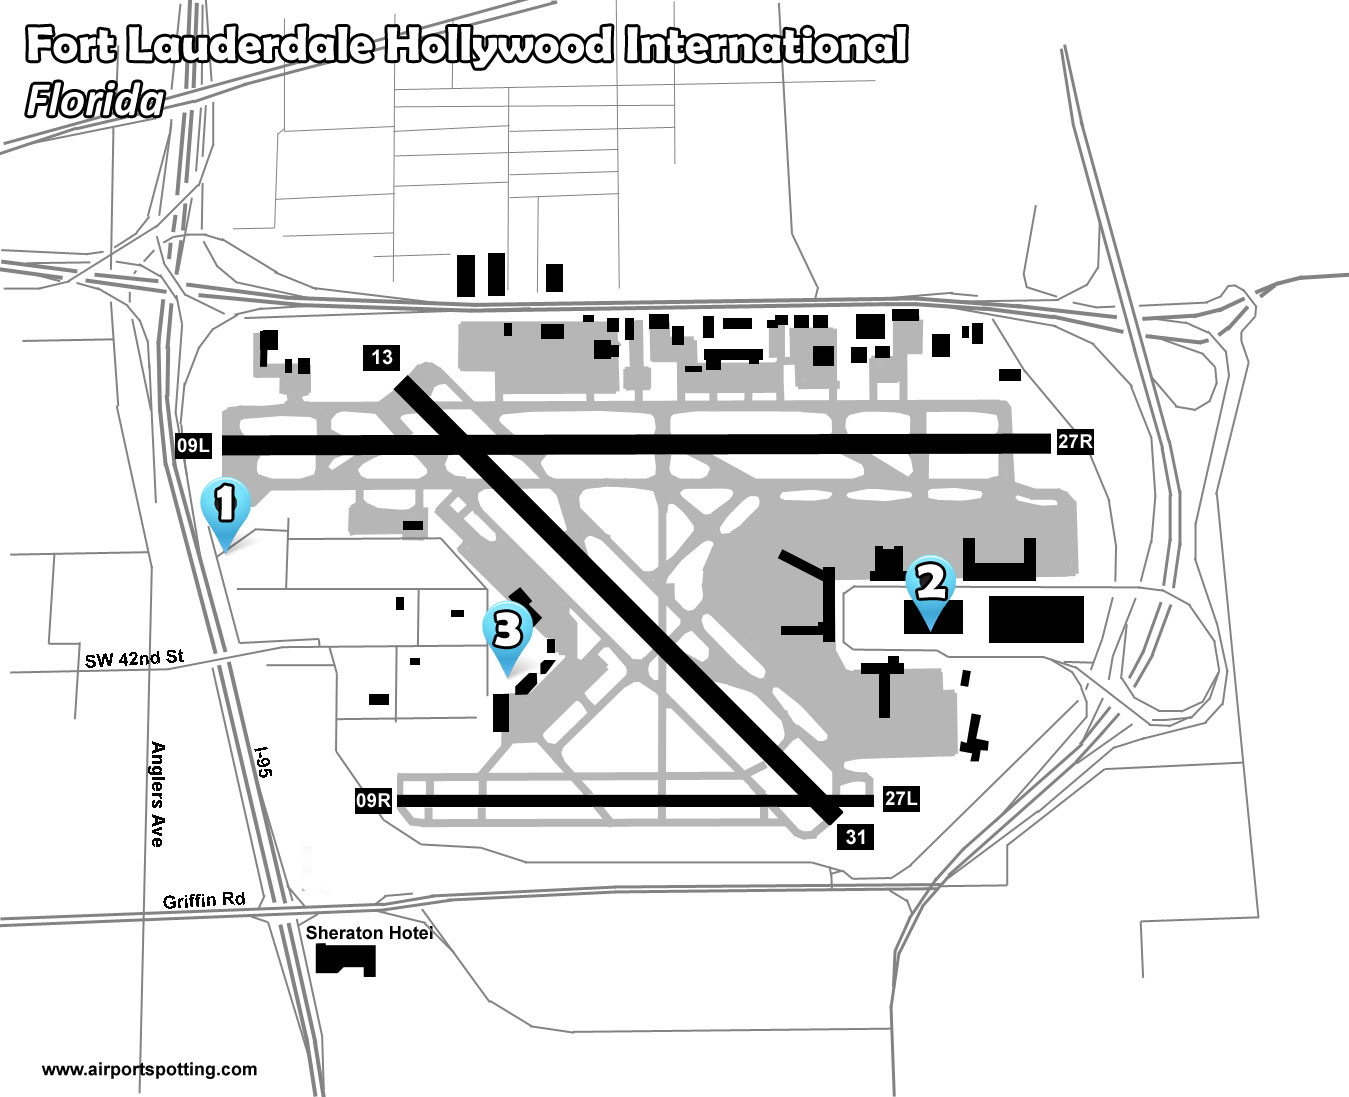 Fort Lauderdale - Airport Spotting Blog on long island islip airport map, national airport map, st. petersburg airport map, ponce airport map, air force base homestead florida map, colorado airport map, runway heathrow airport map, key west airport terminal map, car rental fll airport map, ft myers airport map, montreal airport map, ft lauderdale fl airport map, washington airport map, hayward airport map, los angeles intl airport map, george bush airport terminal map, placencia airport map, flint airport map, o'hare airport runway map, richmond airport map,